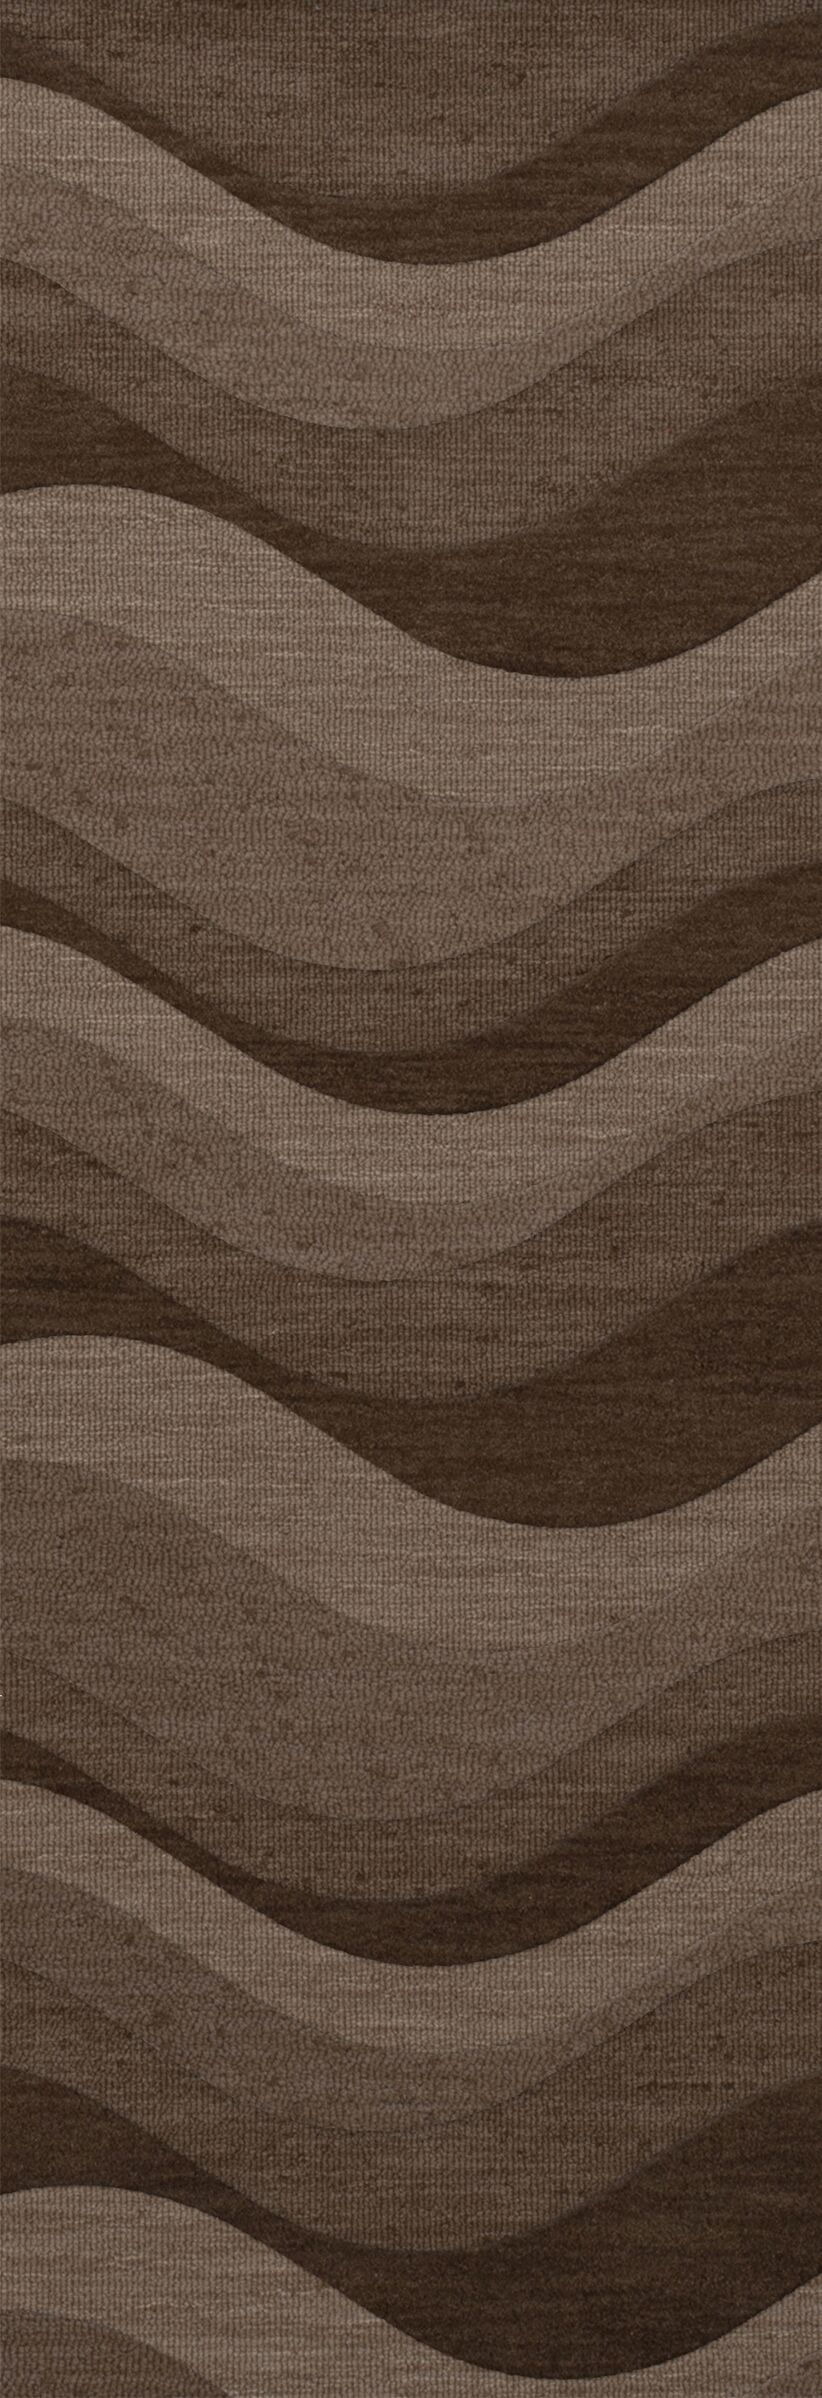 Haller Wool Chipmunk Area Rug Rug Size: Runner 2'6